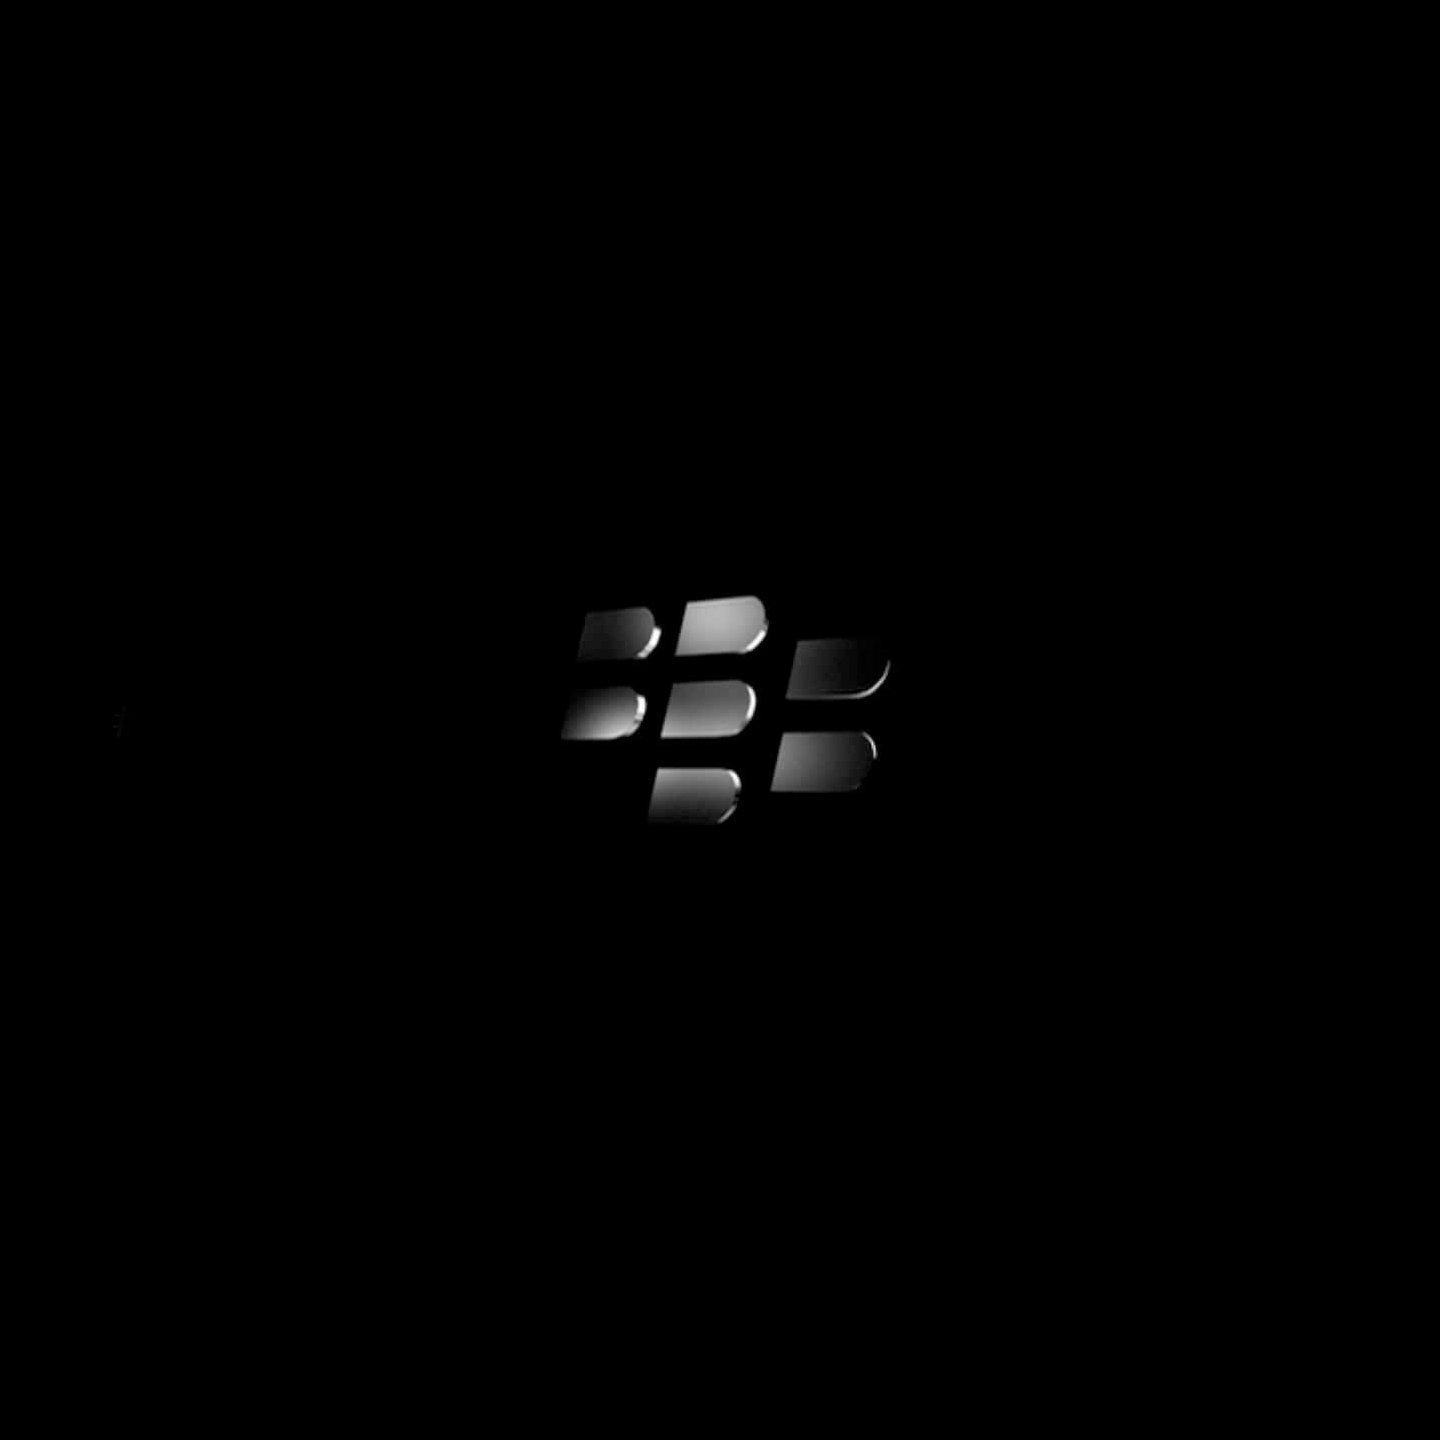 how to download pictures from blackberry priv to computer